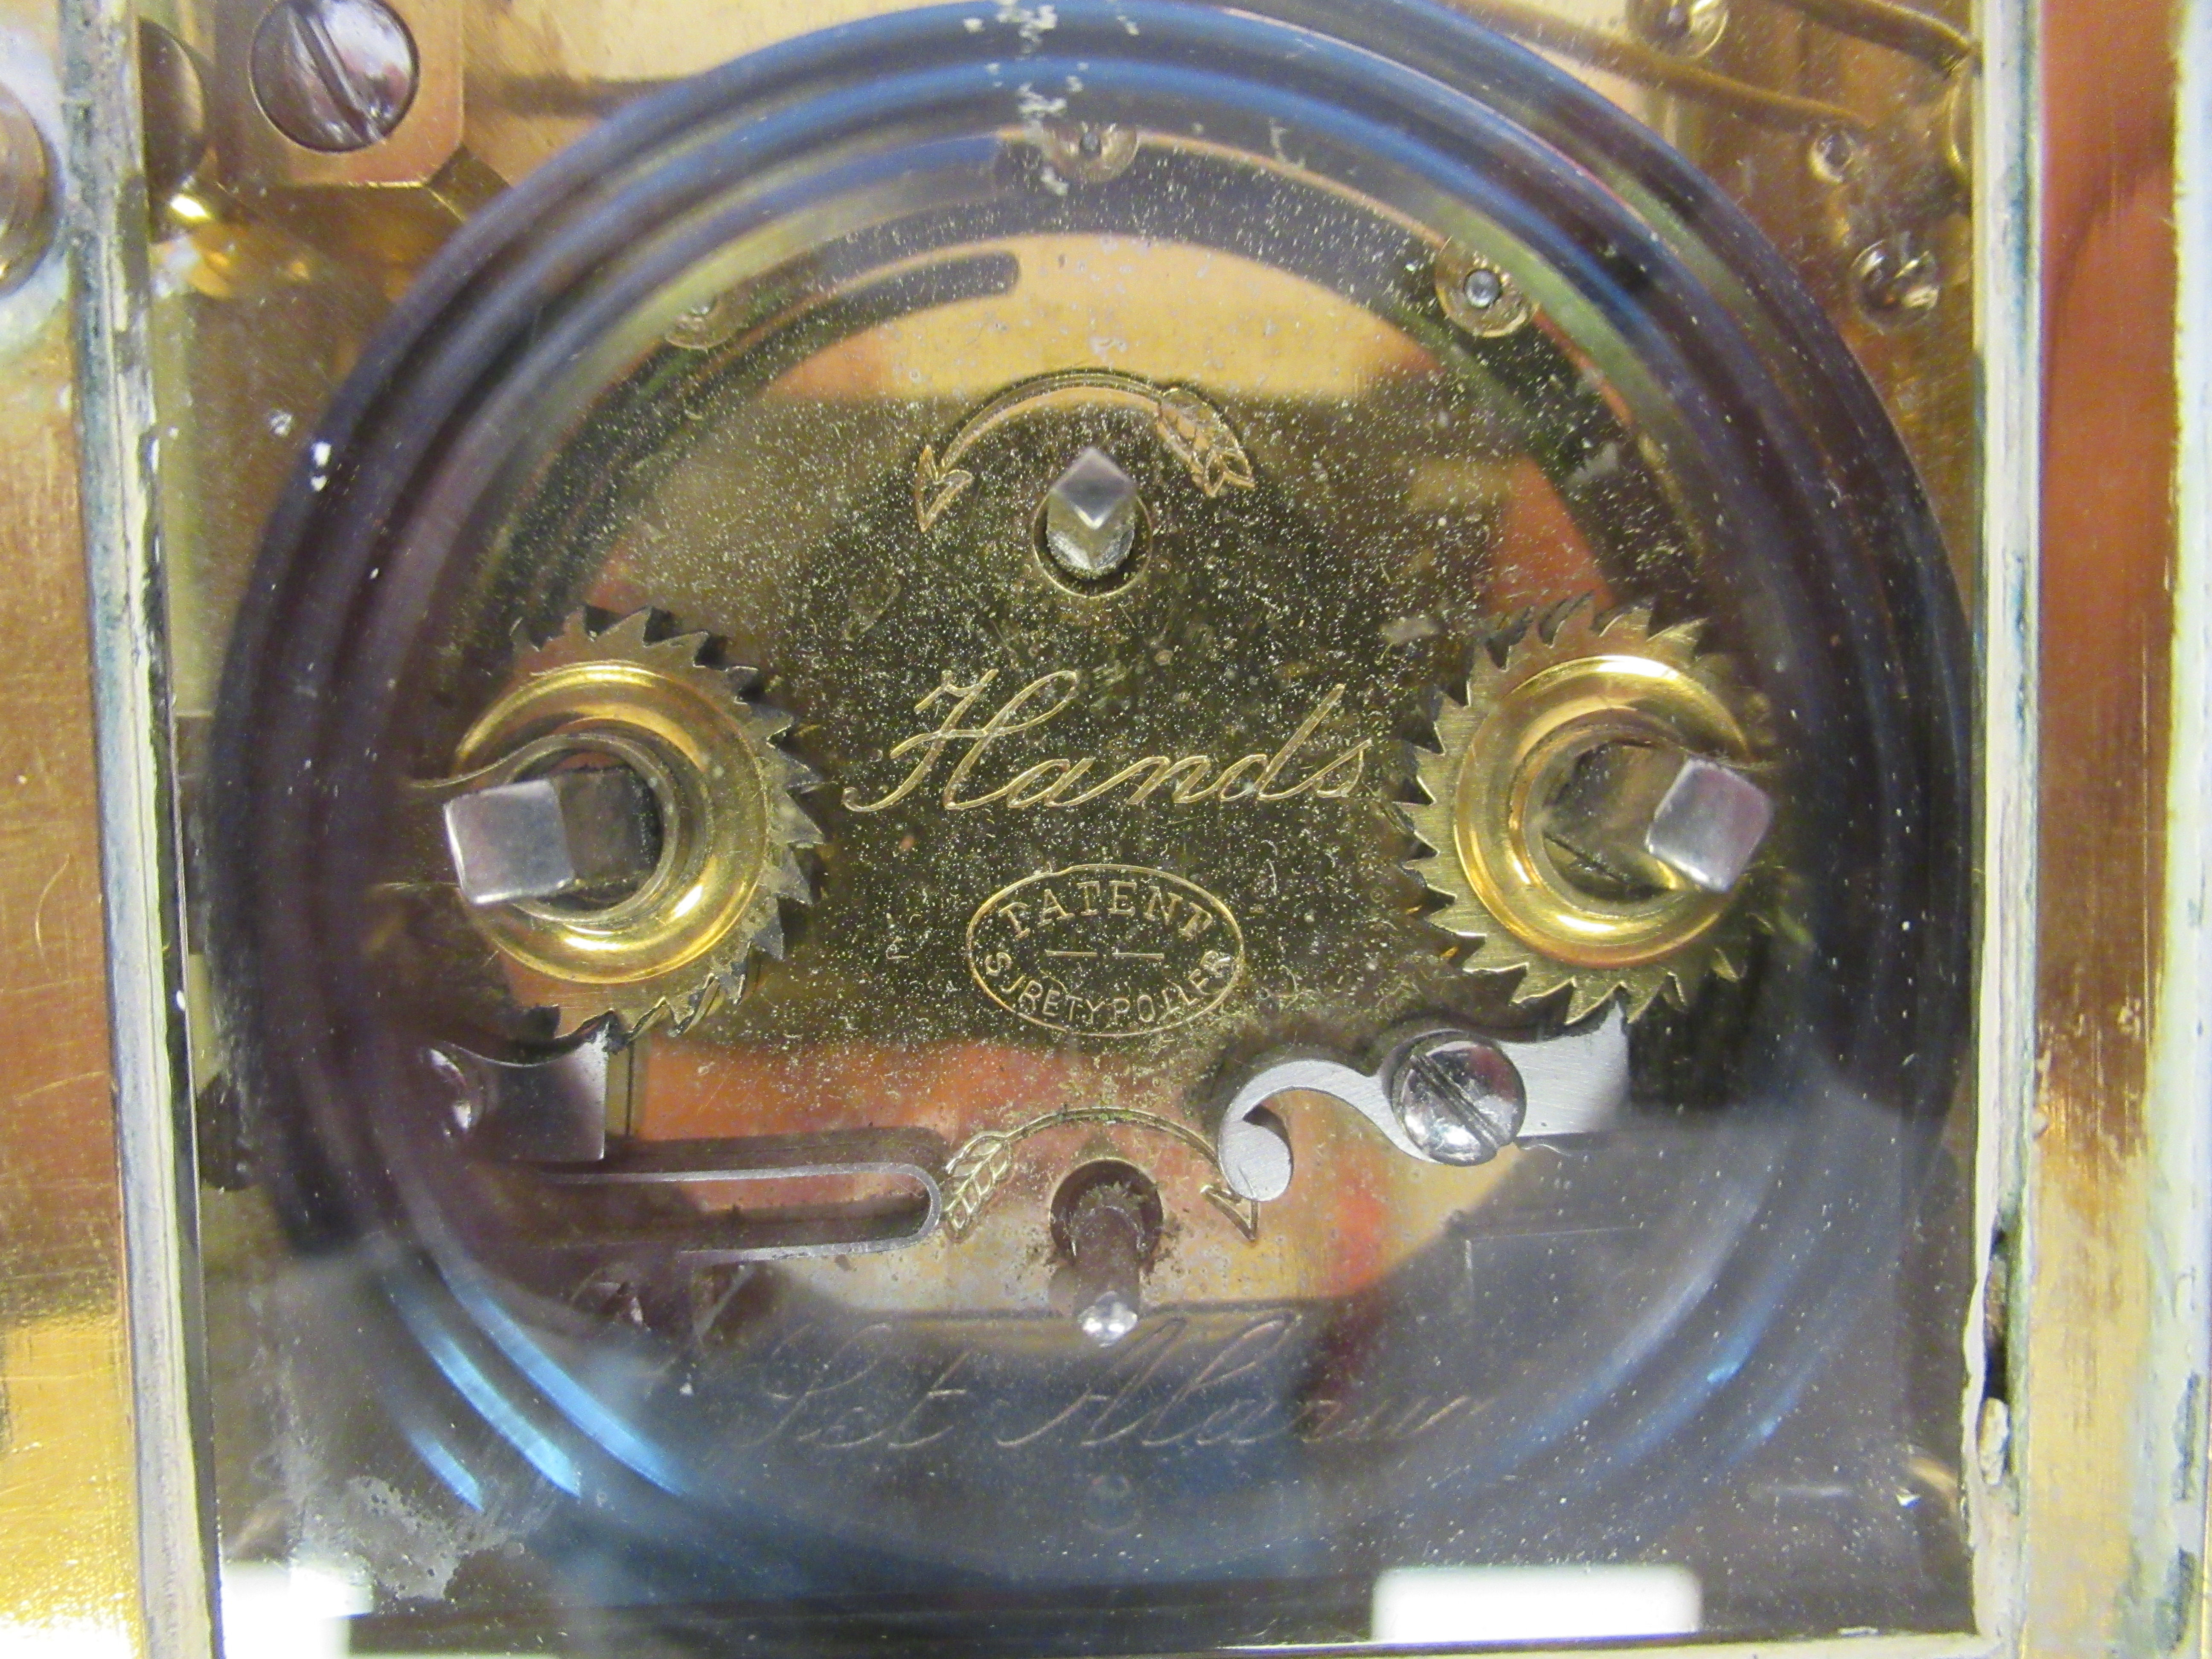 An early 20thC brass cased carriage clock with bevelled glass panels, a folding top handle, on a - Image 8 of 9